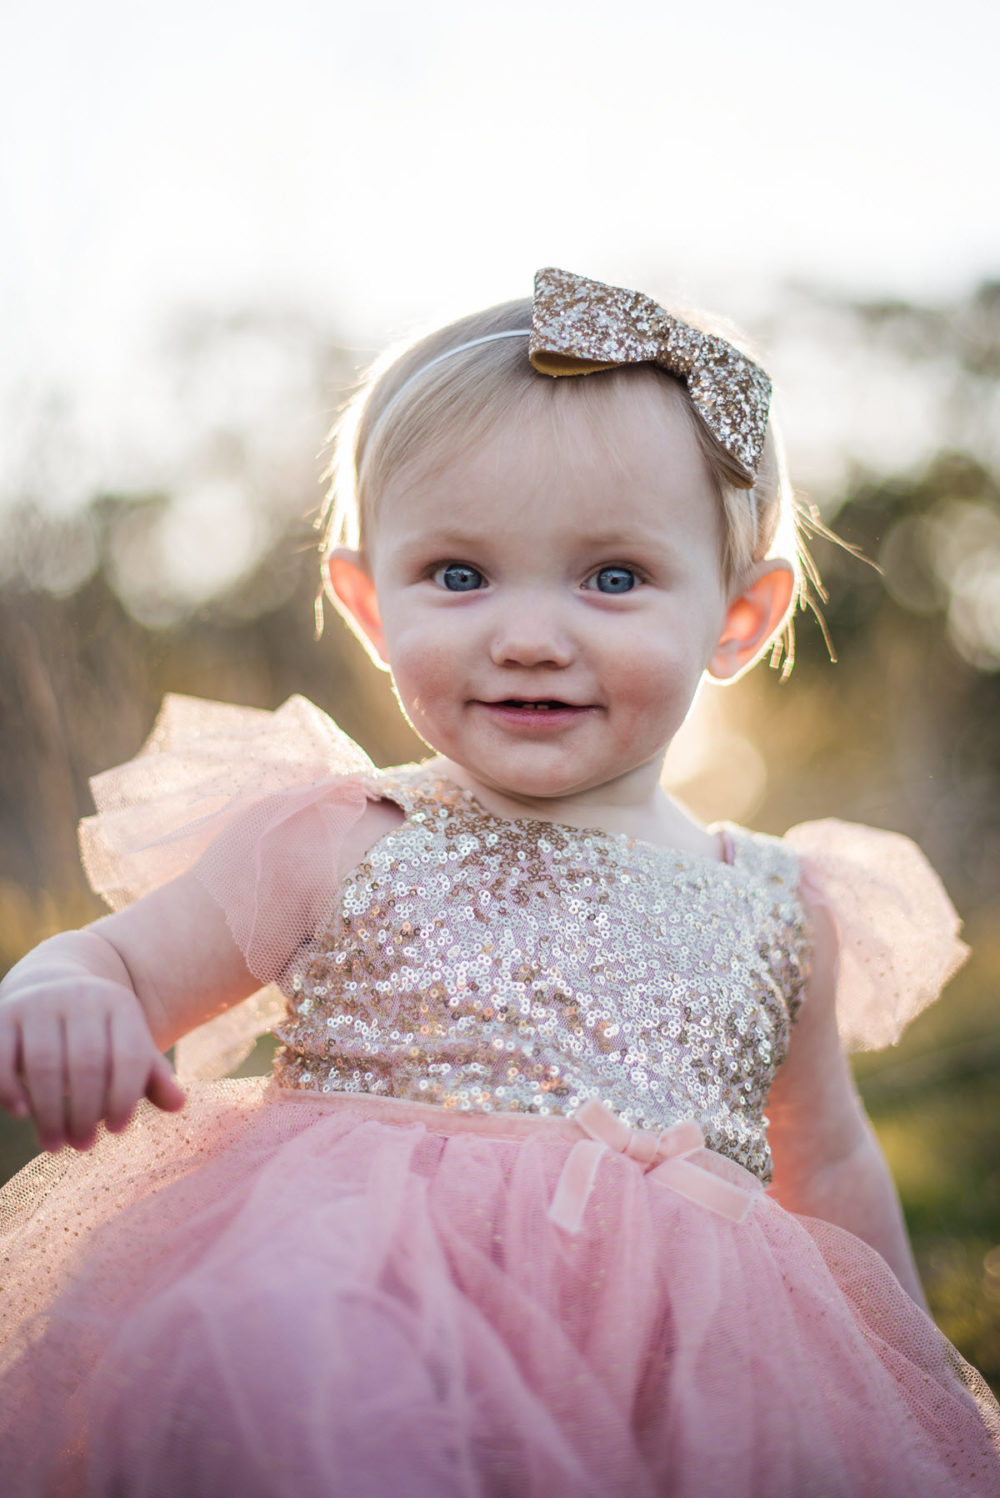 Carly_One_Year_Old_Outdoor_Photos_New_Braunfels_TX-001